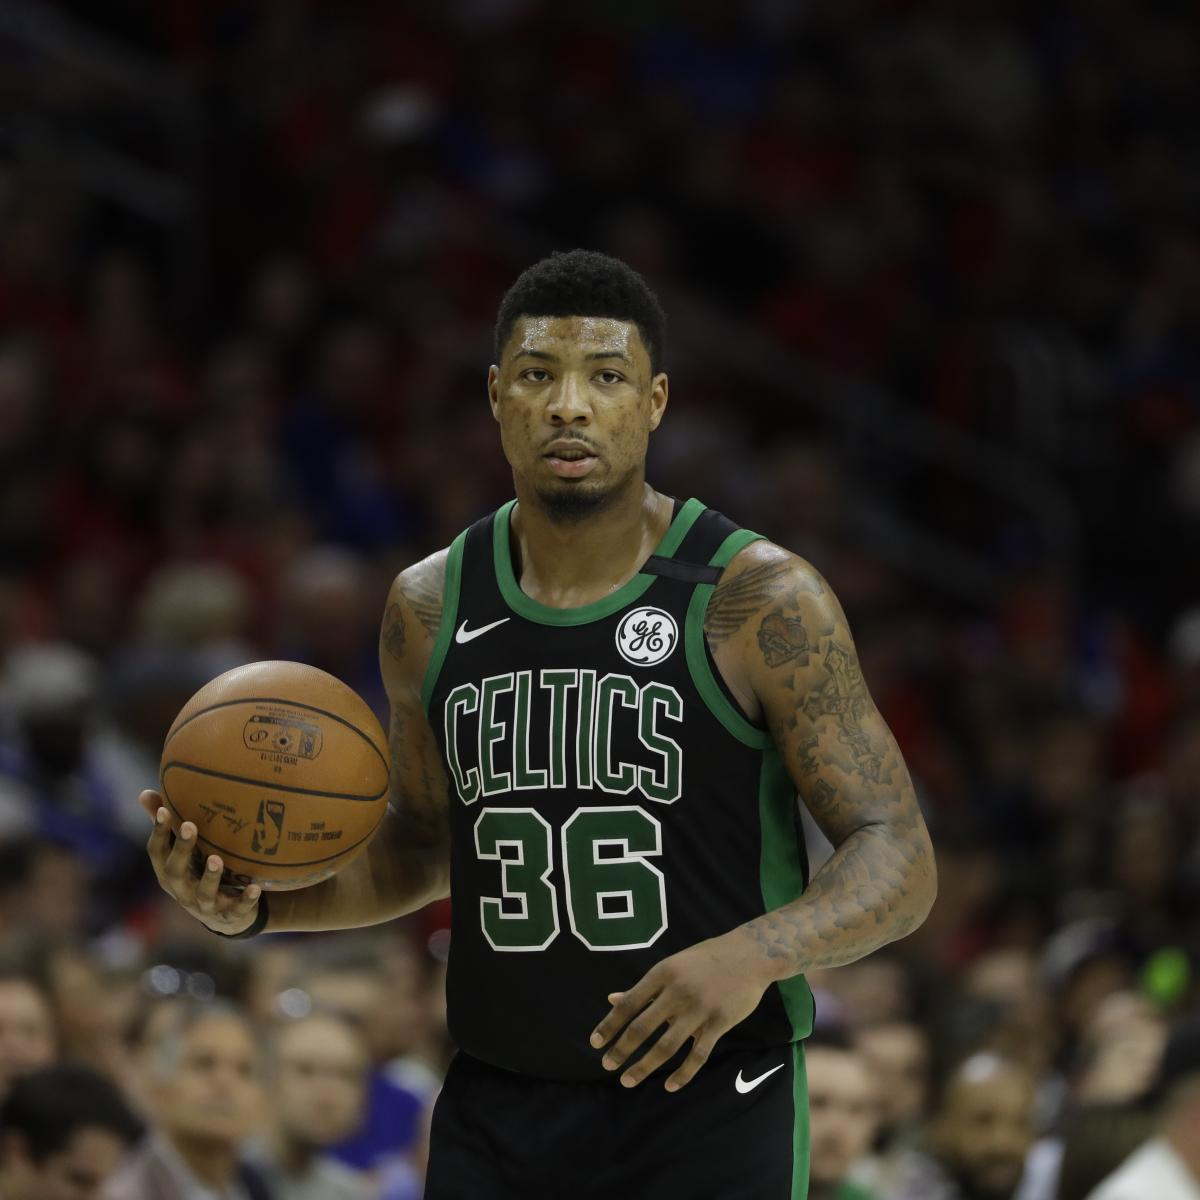 Celtics Rumors: Boston Hasn't Contacted Marcus Smart, PG 'Hurt and Disgusted'